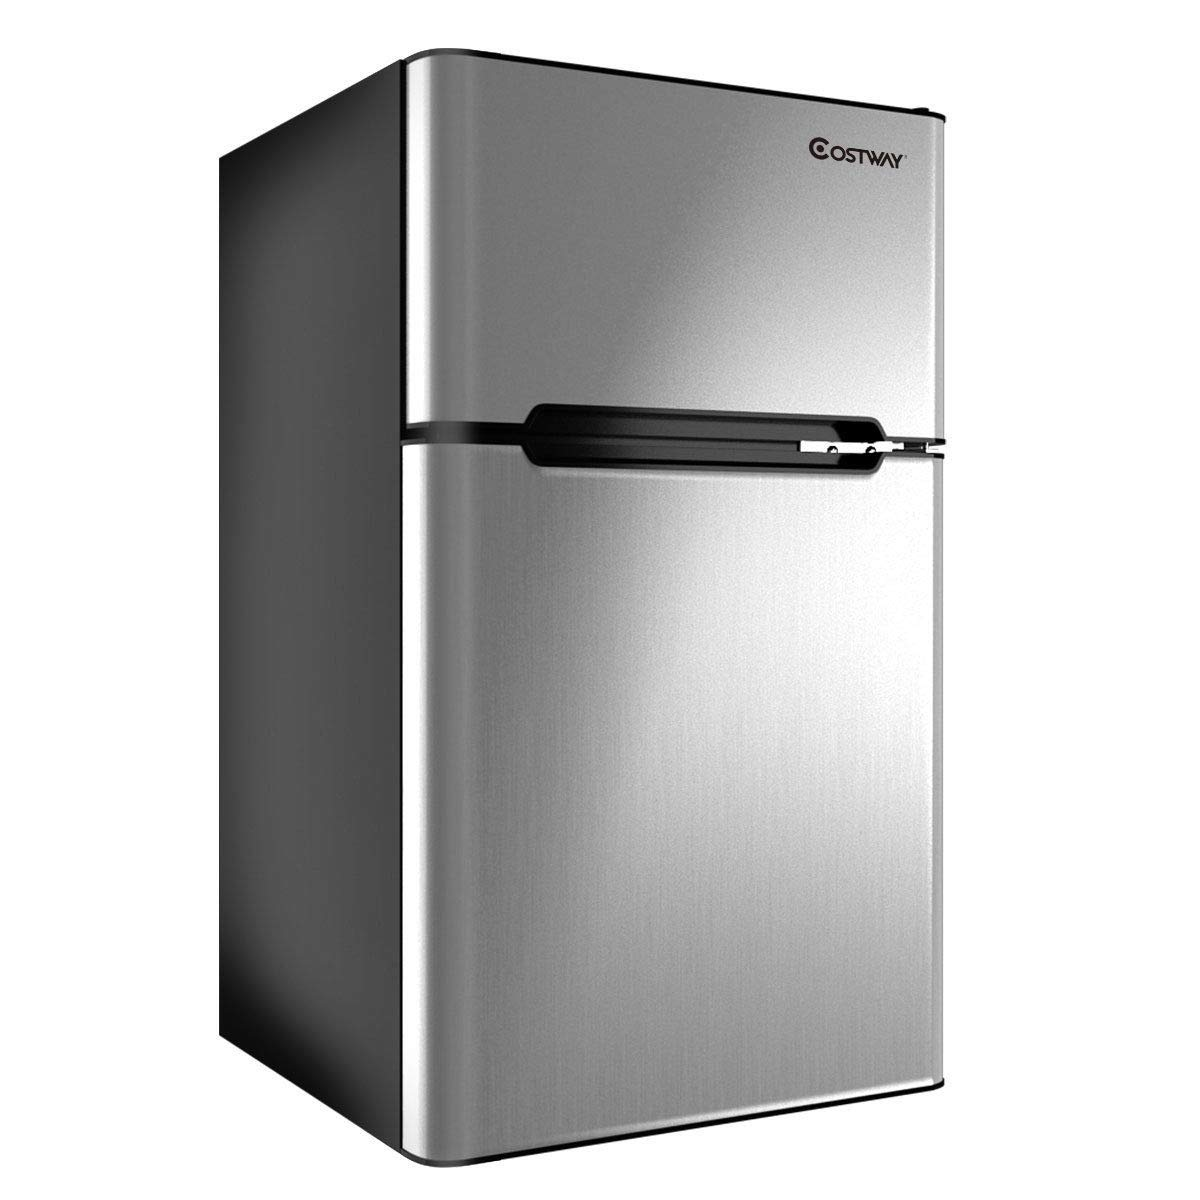 COSTWAY Compact Refrigerator 3.2 cu ft. Unit Small Freezer Cooler Fridge (Grey)